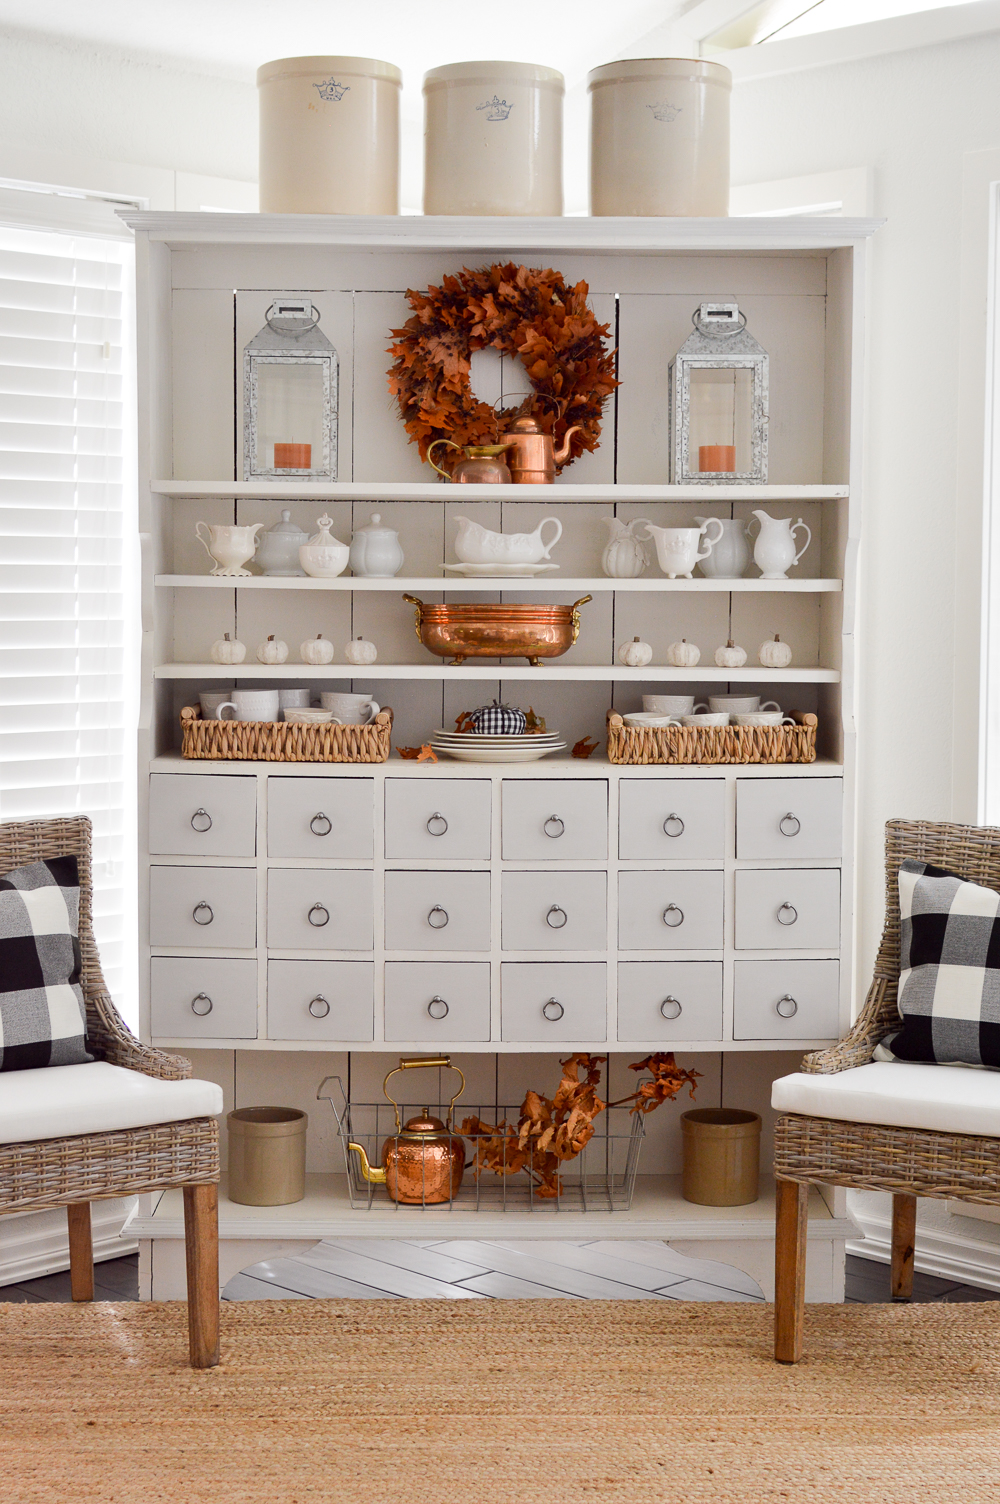 Cottage Kitchen Apothecary Cabinet: a sensible storage solution